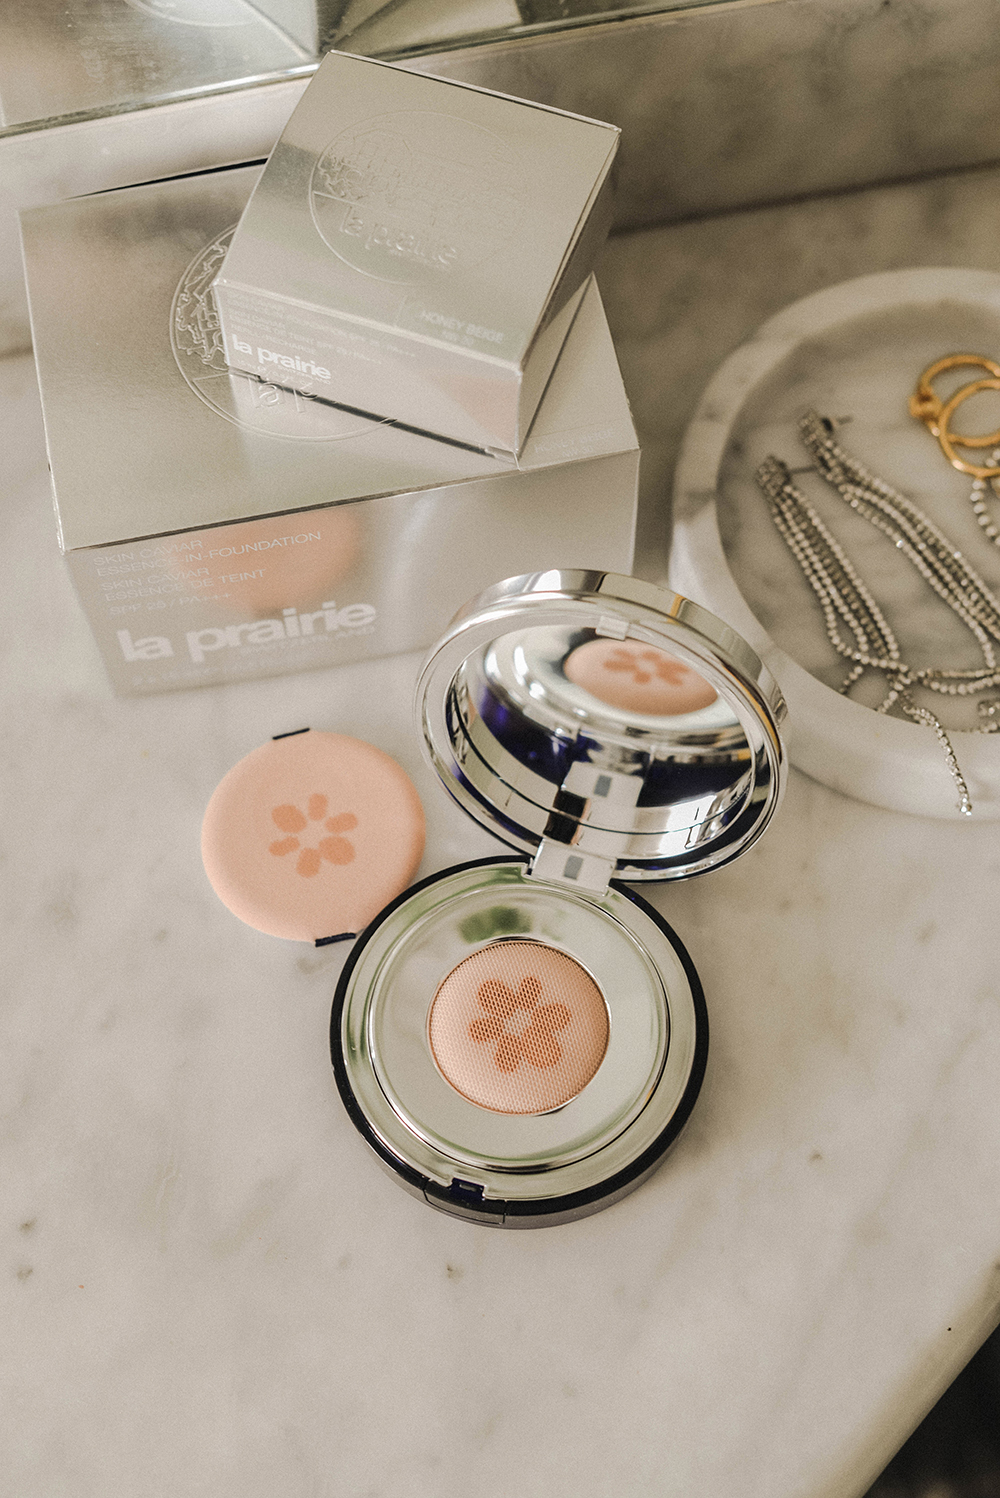 la prairie nuovo fondotinta 2018 Essence in Foundation Skin Caviar Collection-2